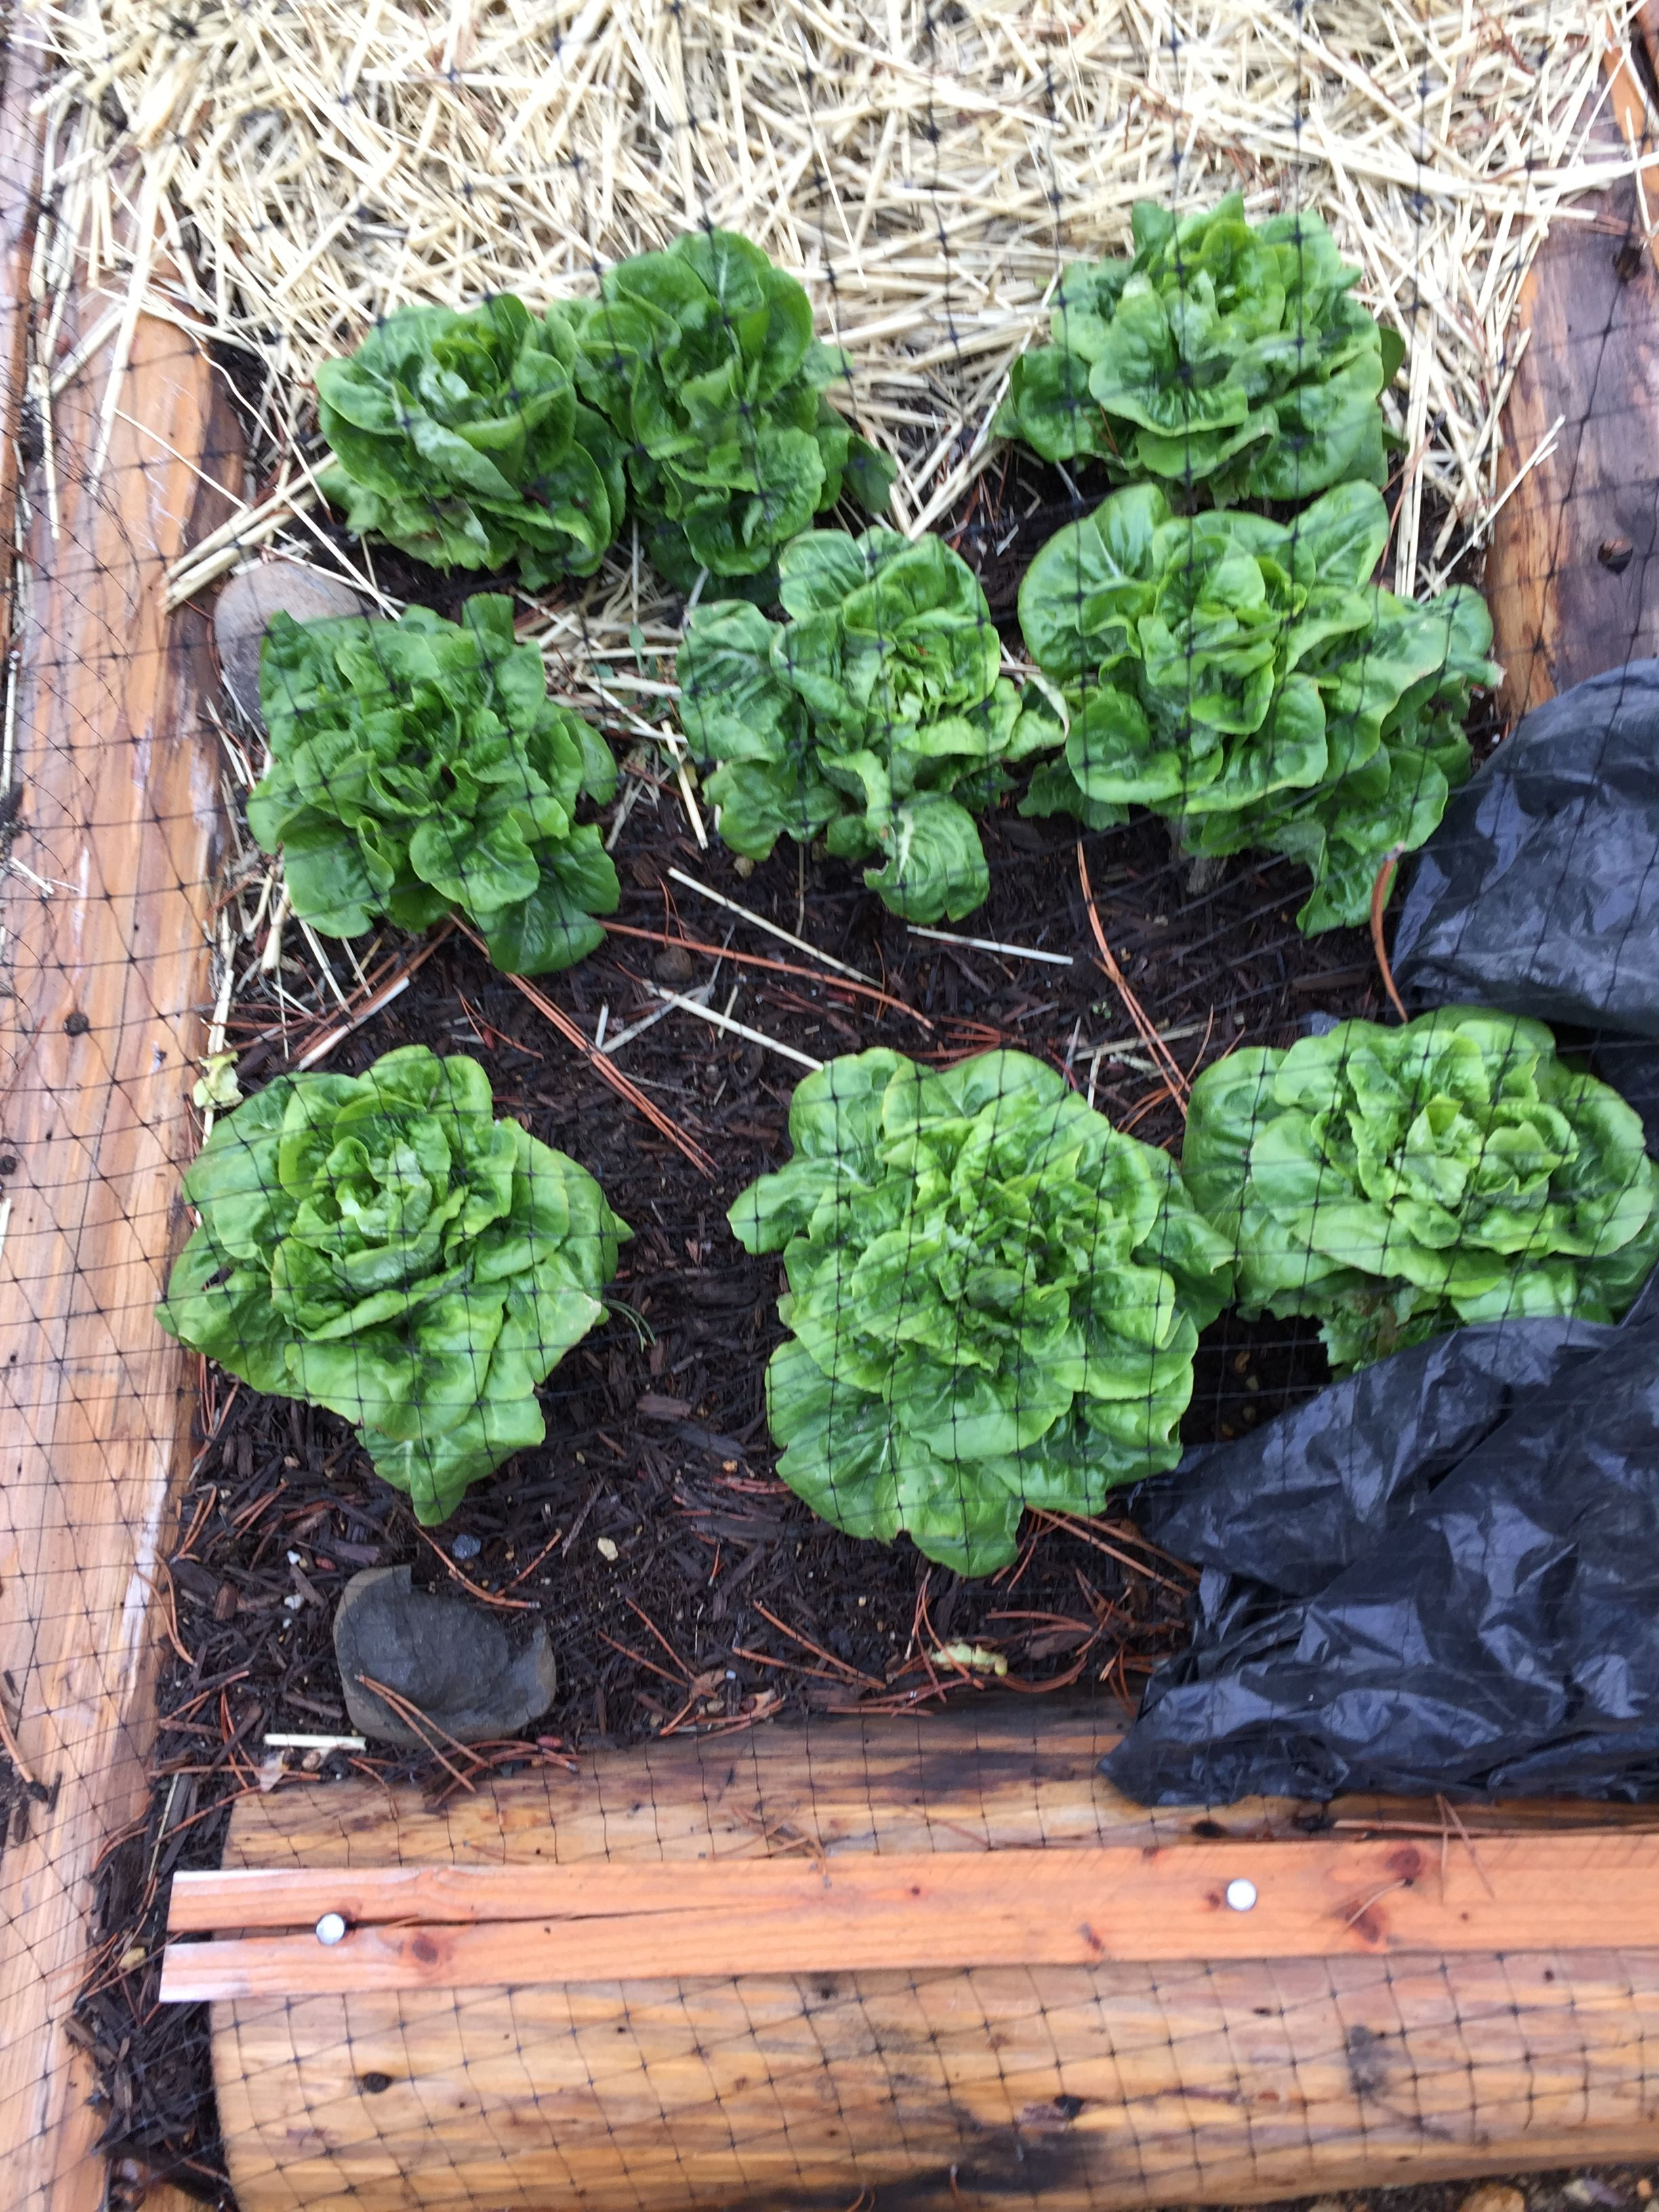 This Bib butter head lettuce. This stuff is amazing. Withstands freezing temps down to 23 degrees outside uncovered. Today November 27 we picked a head with snow on it.